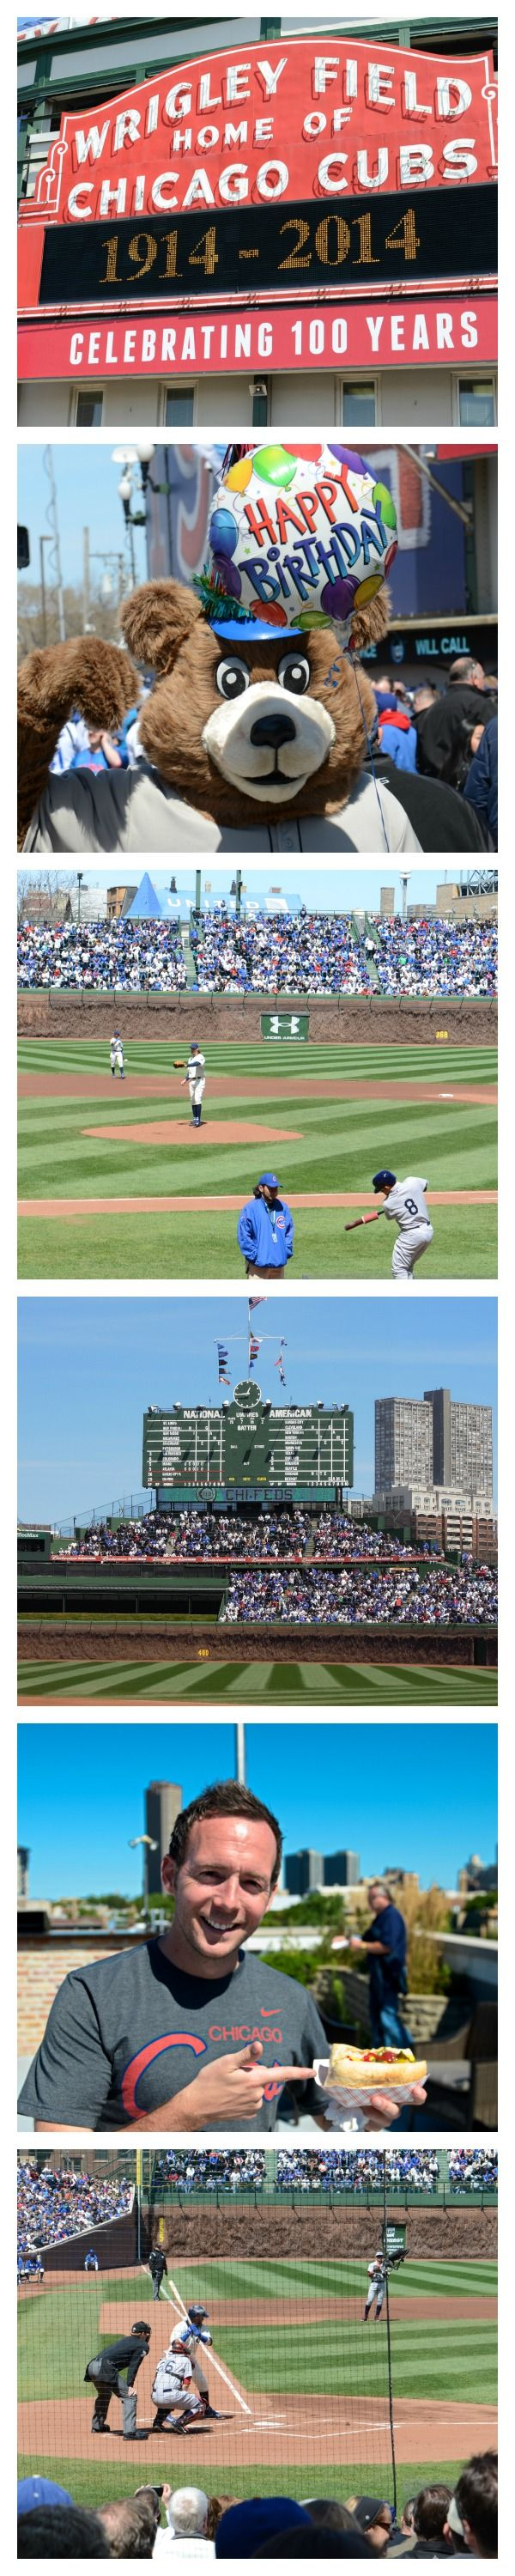 Wrigley Field celebrates 100 year birthday! We were there!  Go Chicago Cubs! Live near Wrigley Field! #chicagoapartments #chicagocubs